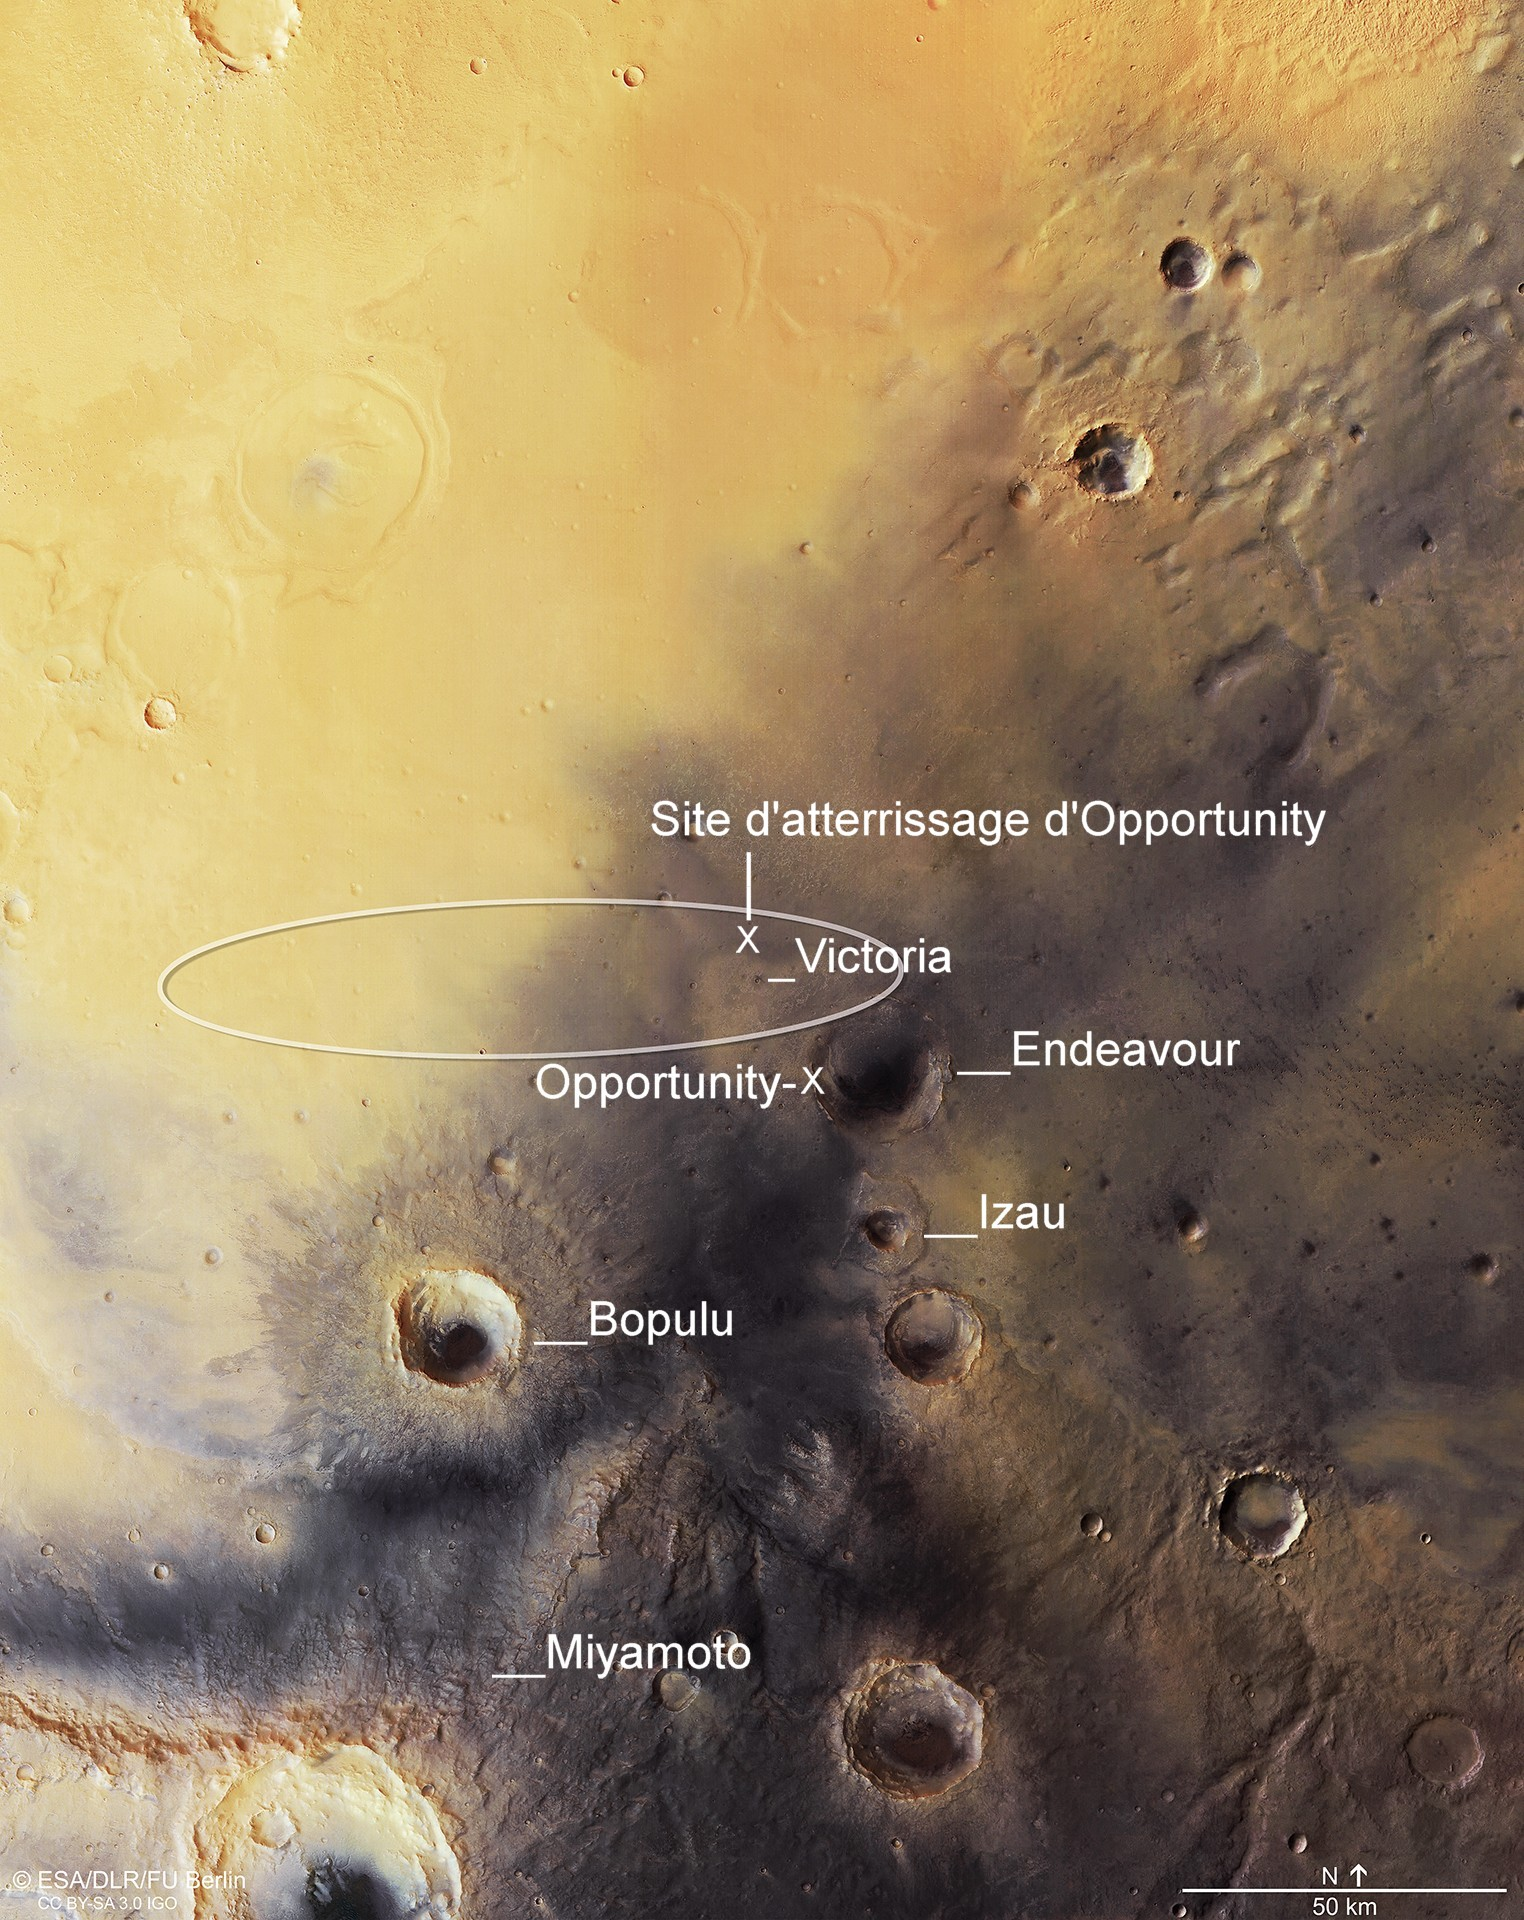 mars_express_image_of_schiaparelli_s_landing_site_with_ellipse-rens